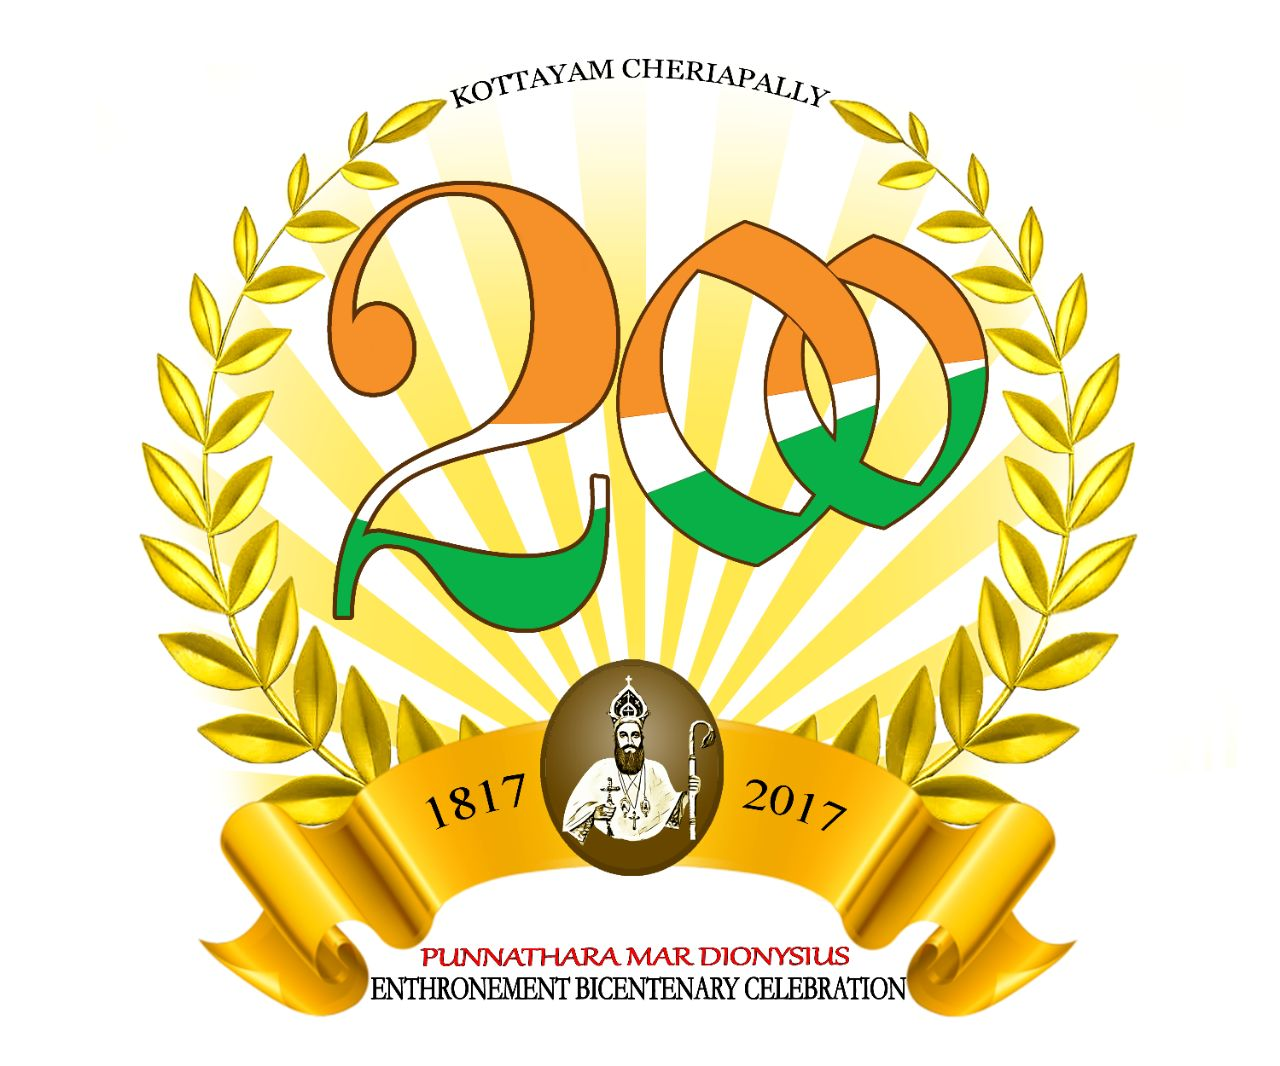 Bicentinary Celebrations of Enthonment of Punnathra Mar dionysius